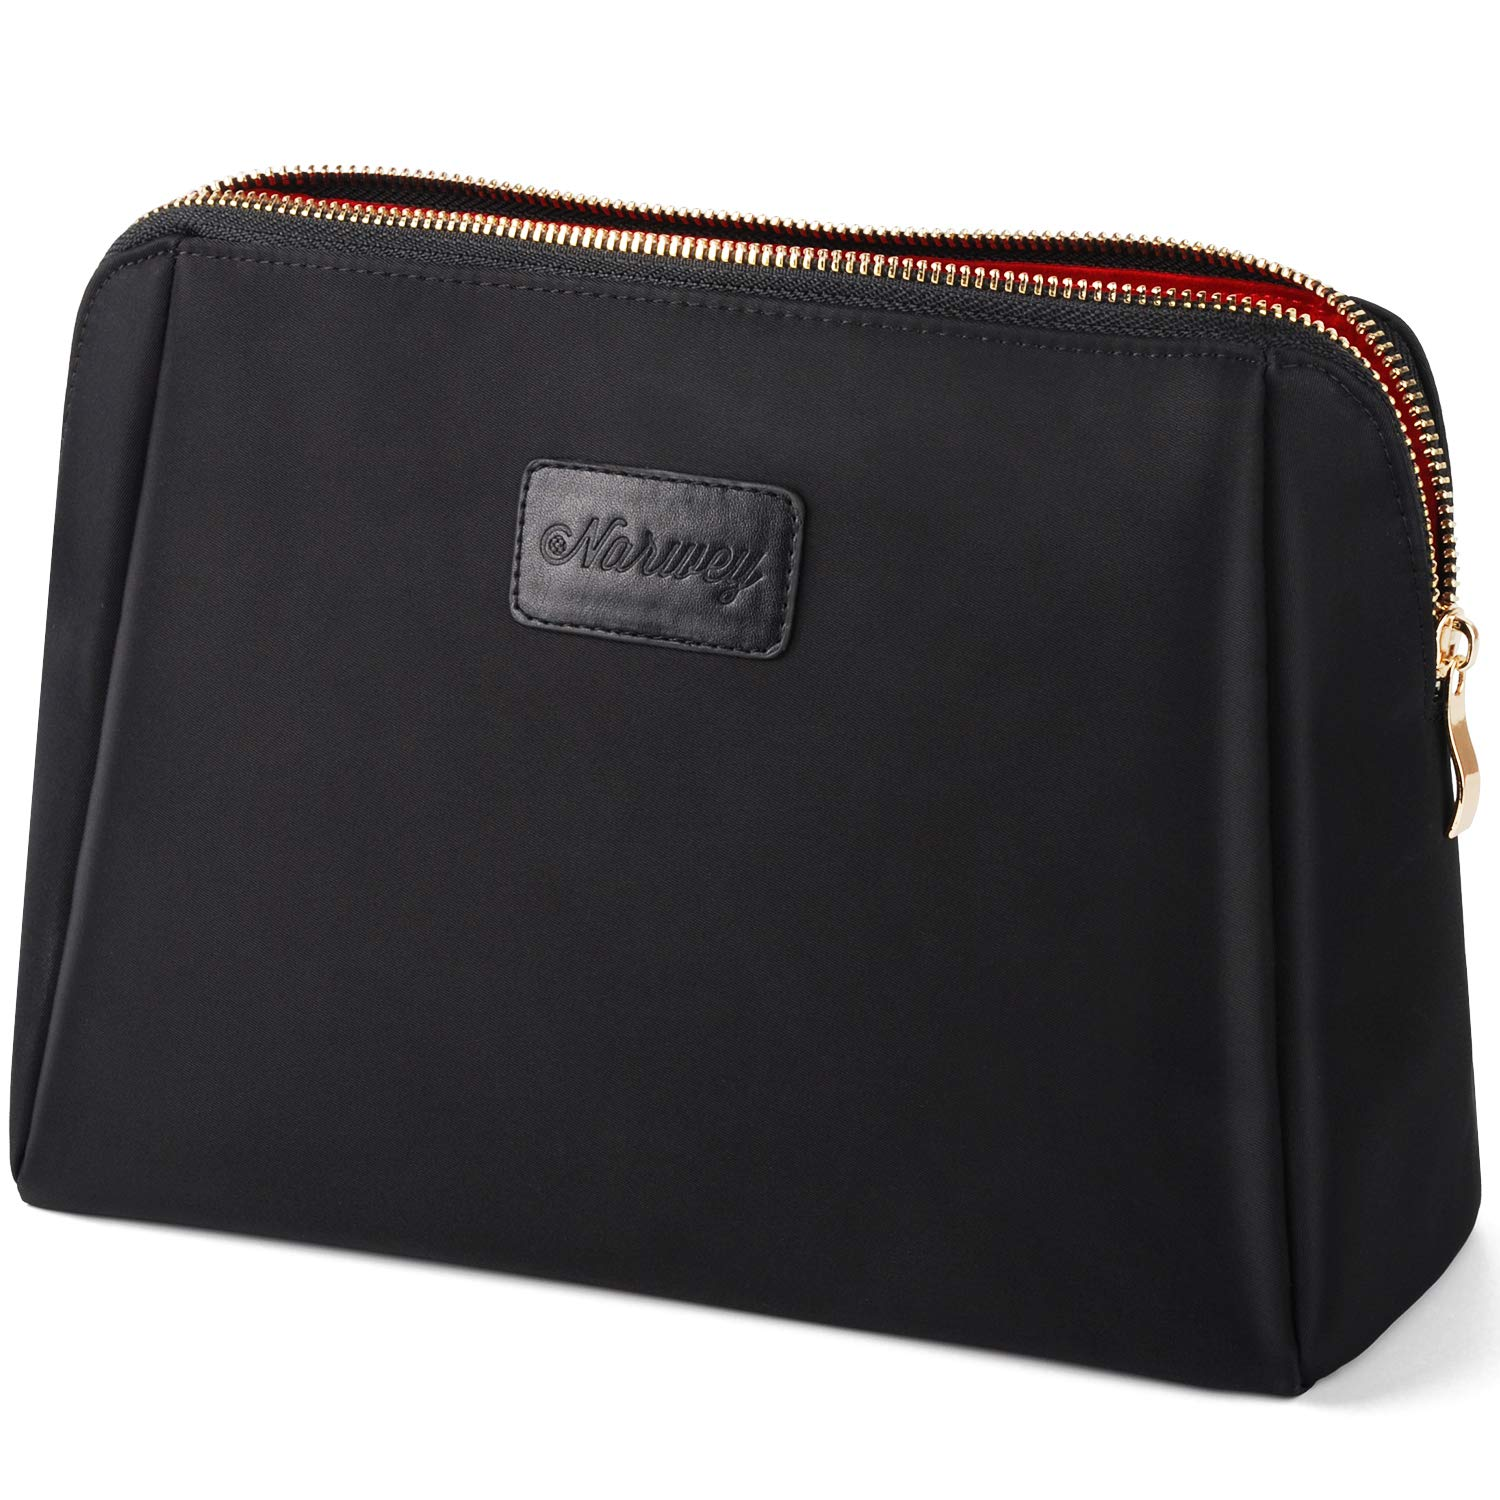 Large Makeup Bag Cosmetic Clutch Handy Pouch for Women (Black) Narwey